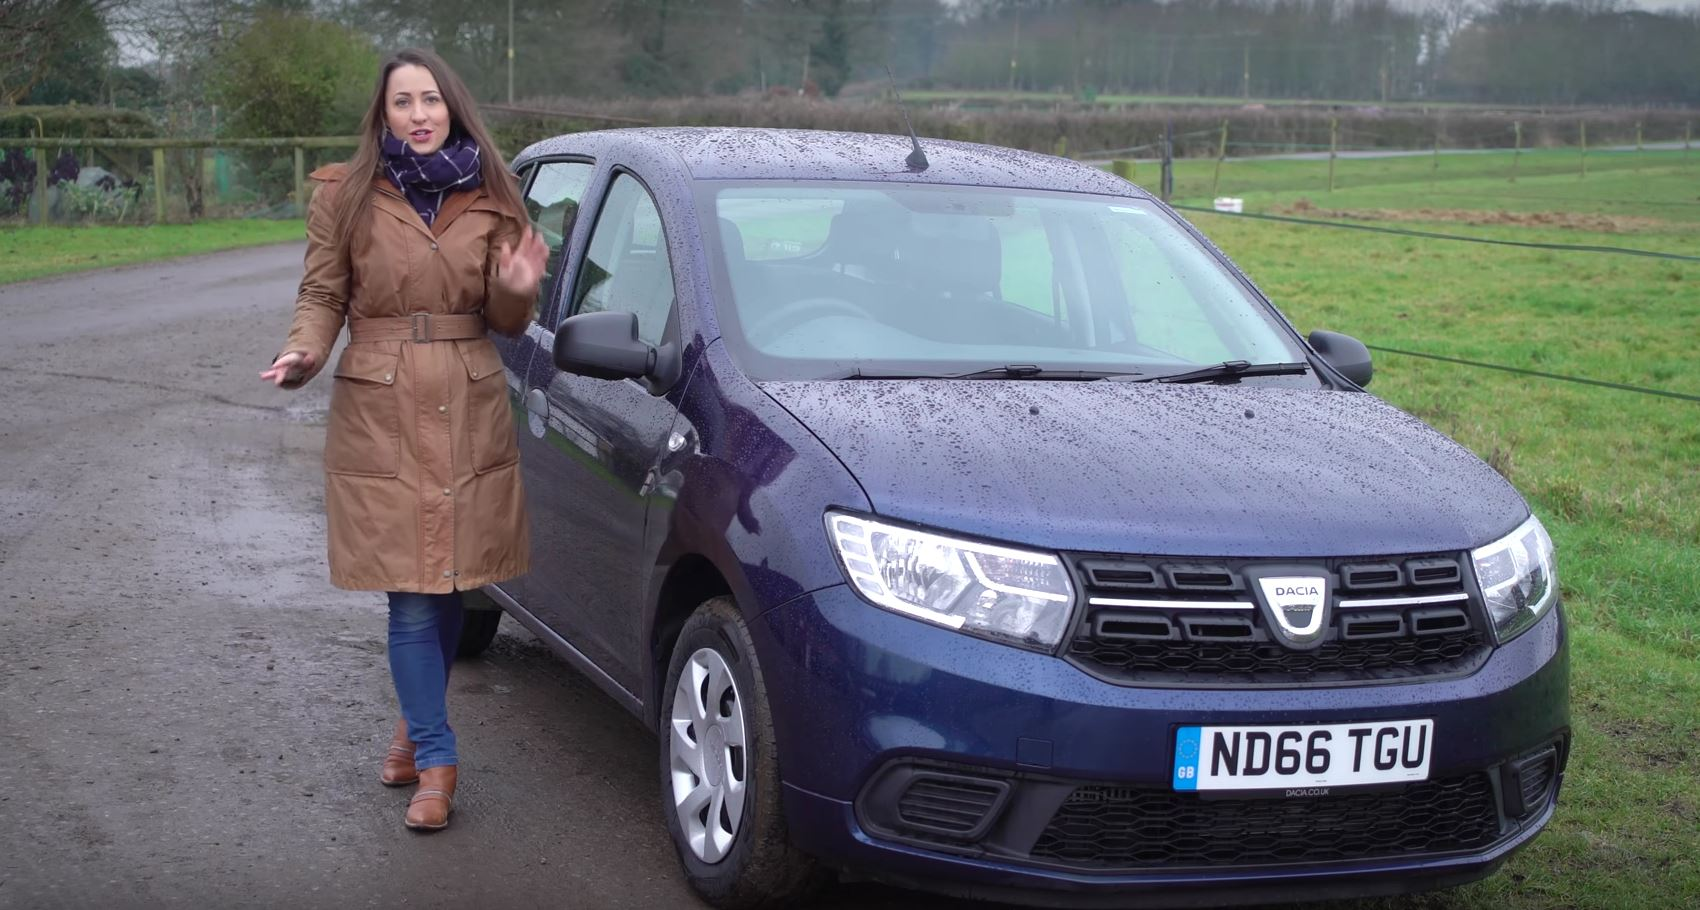 2017 dacia sandero reviewed by lovely rebecca jackson. Black Bedroom Furniture Sets. Home Design Ideas